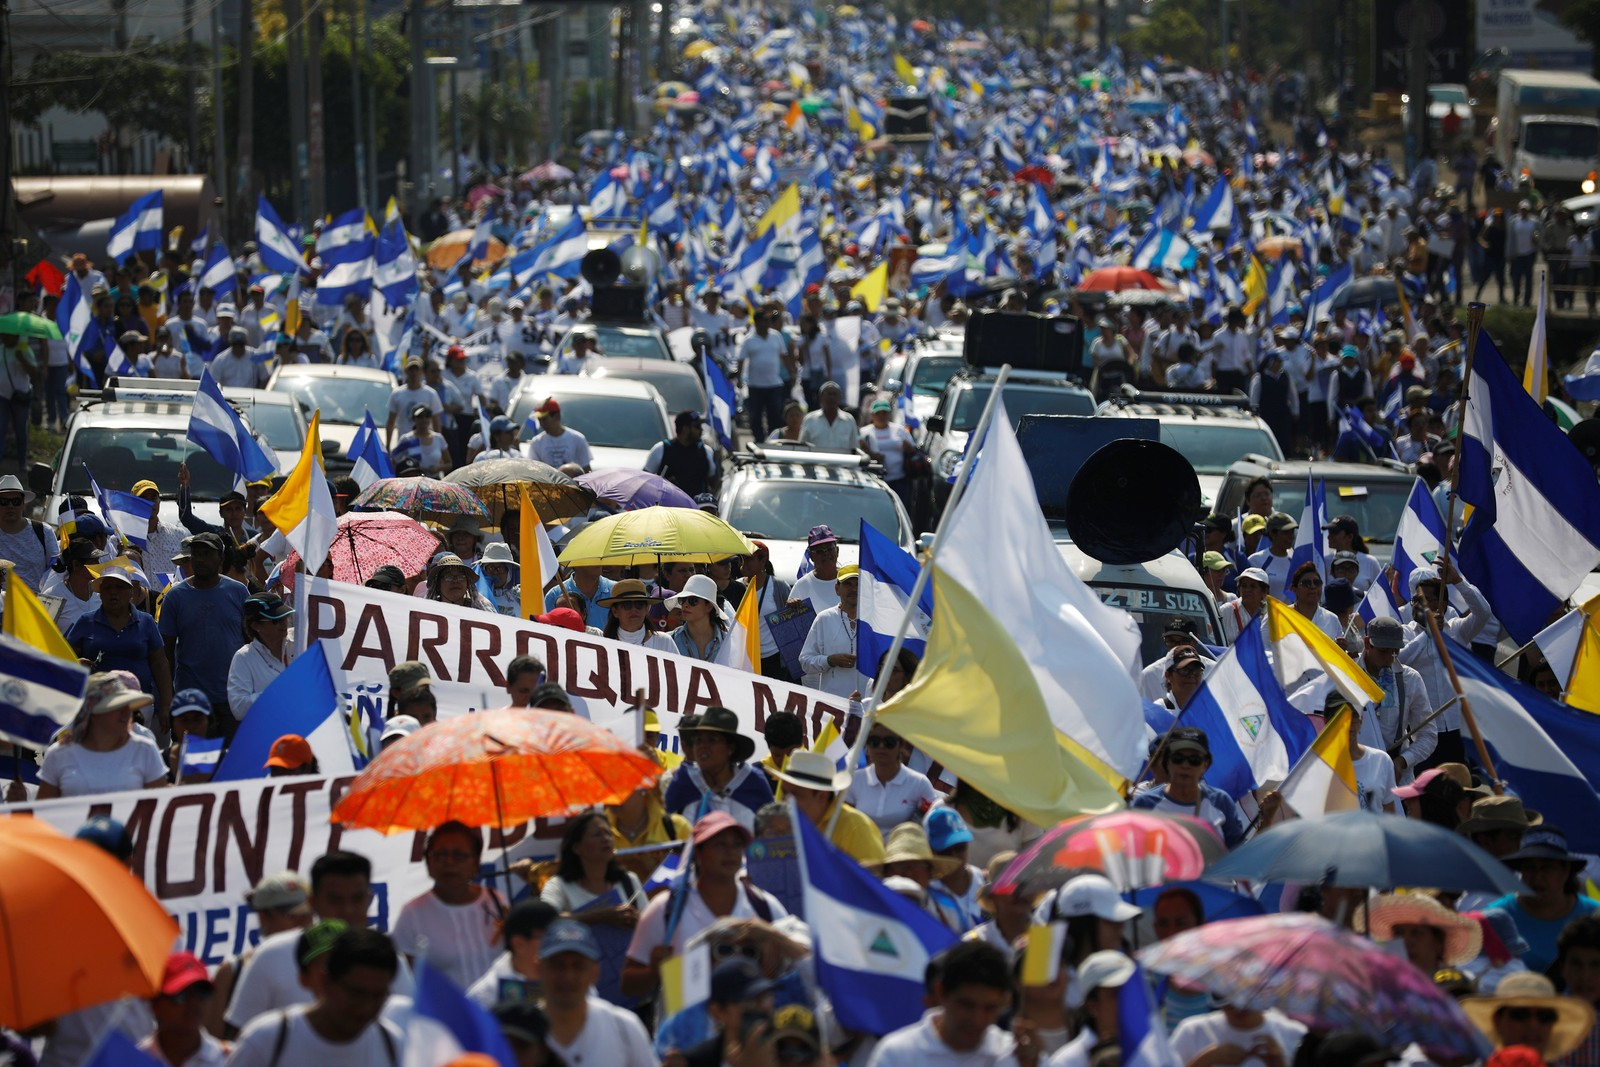 Nicaragua: The International General Council of SSVP calls for immediate national dialogue and reconciliation urging the country to restore peace and order.